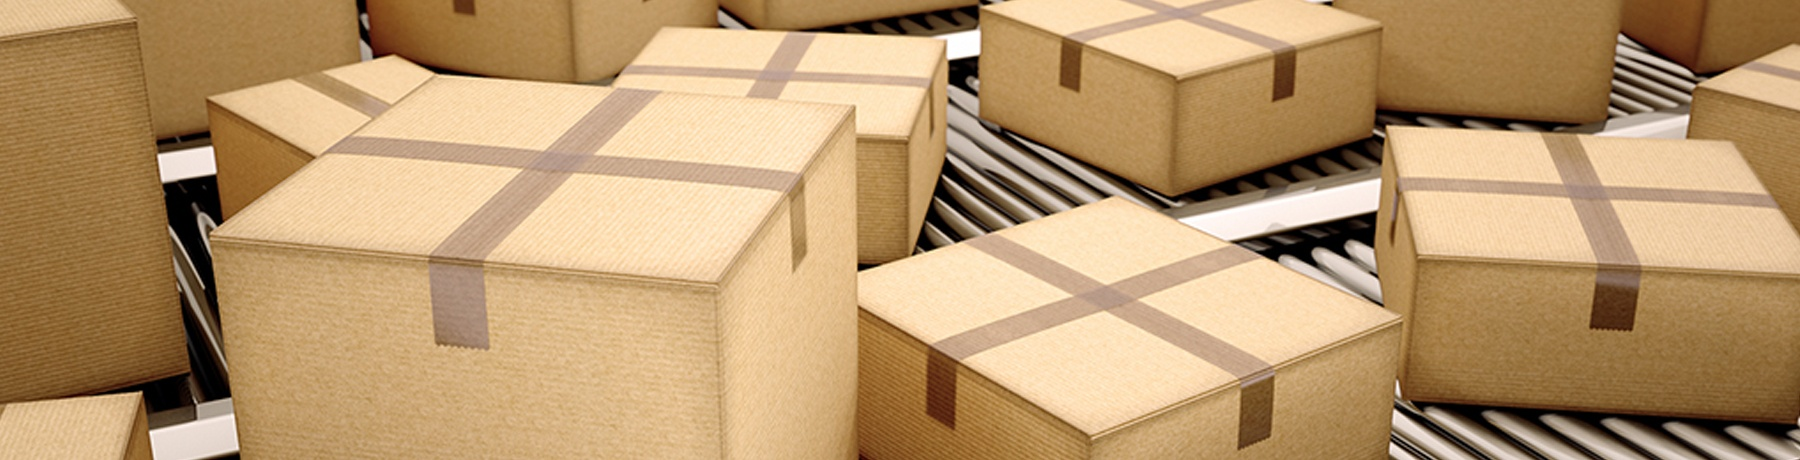 Material Handling - Replacement Components